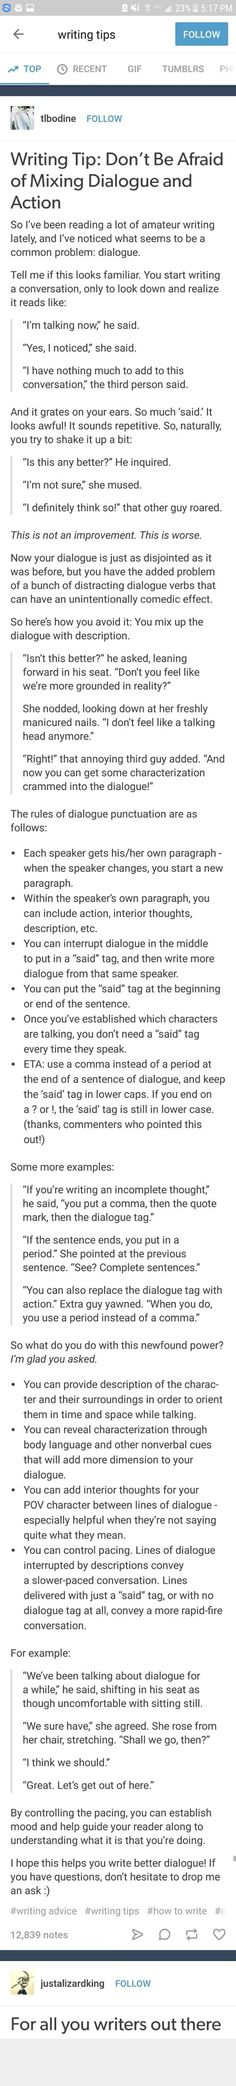 I LOVE THIS!!  Great tips for the writers who struggle with dialogue or just want a refresher